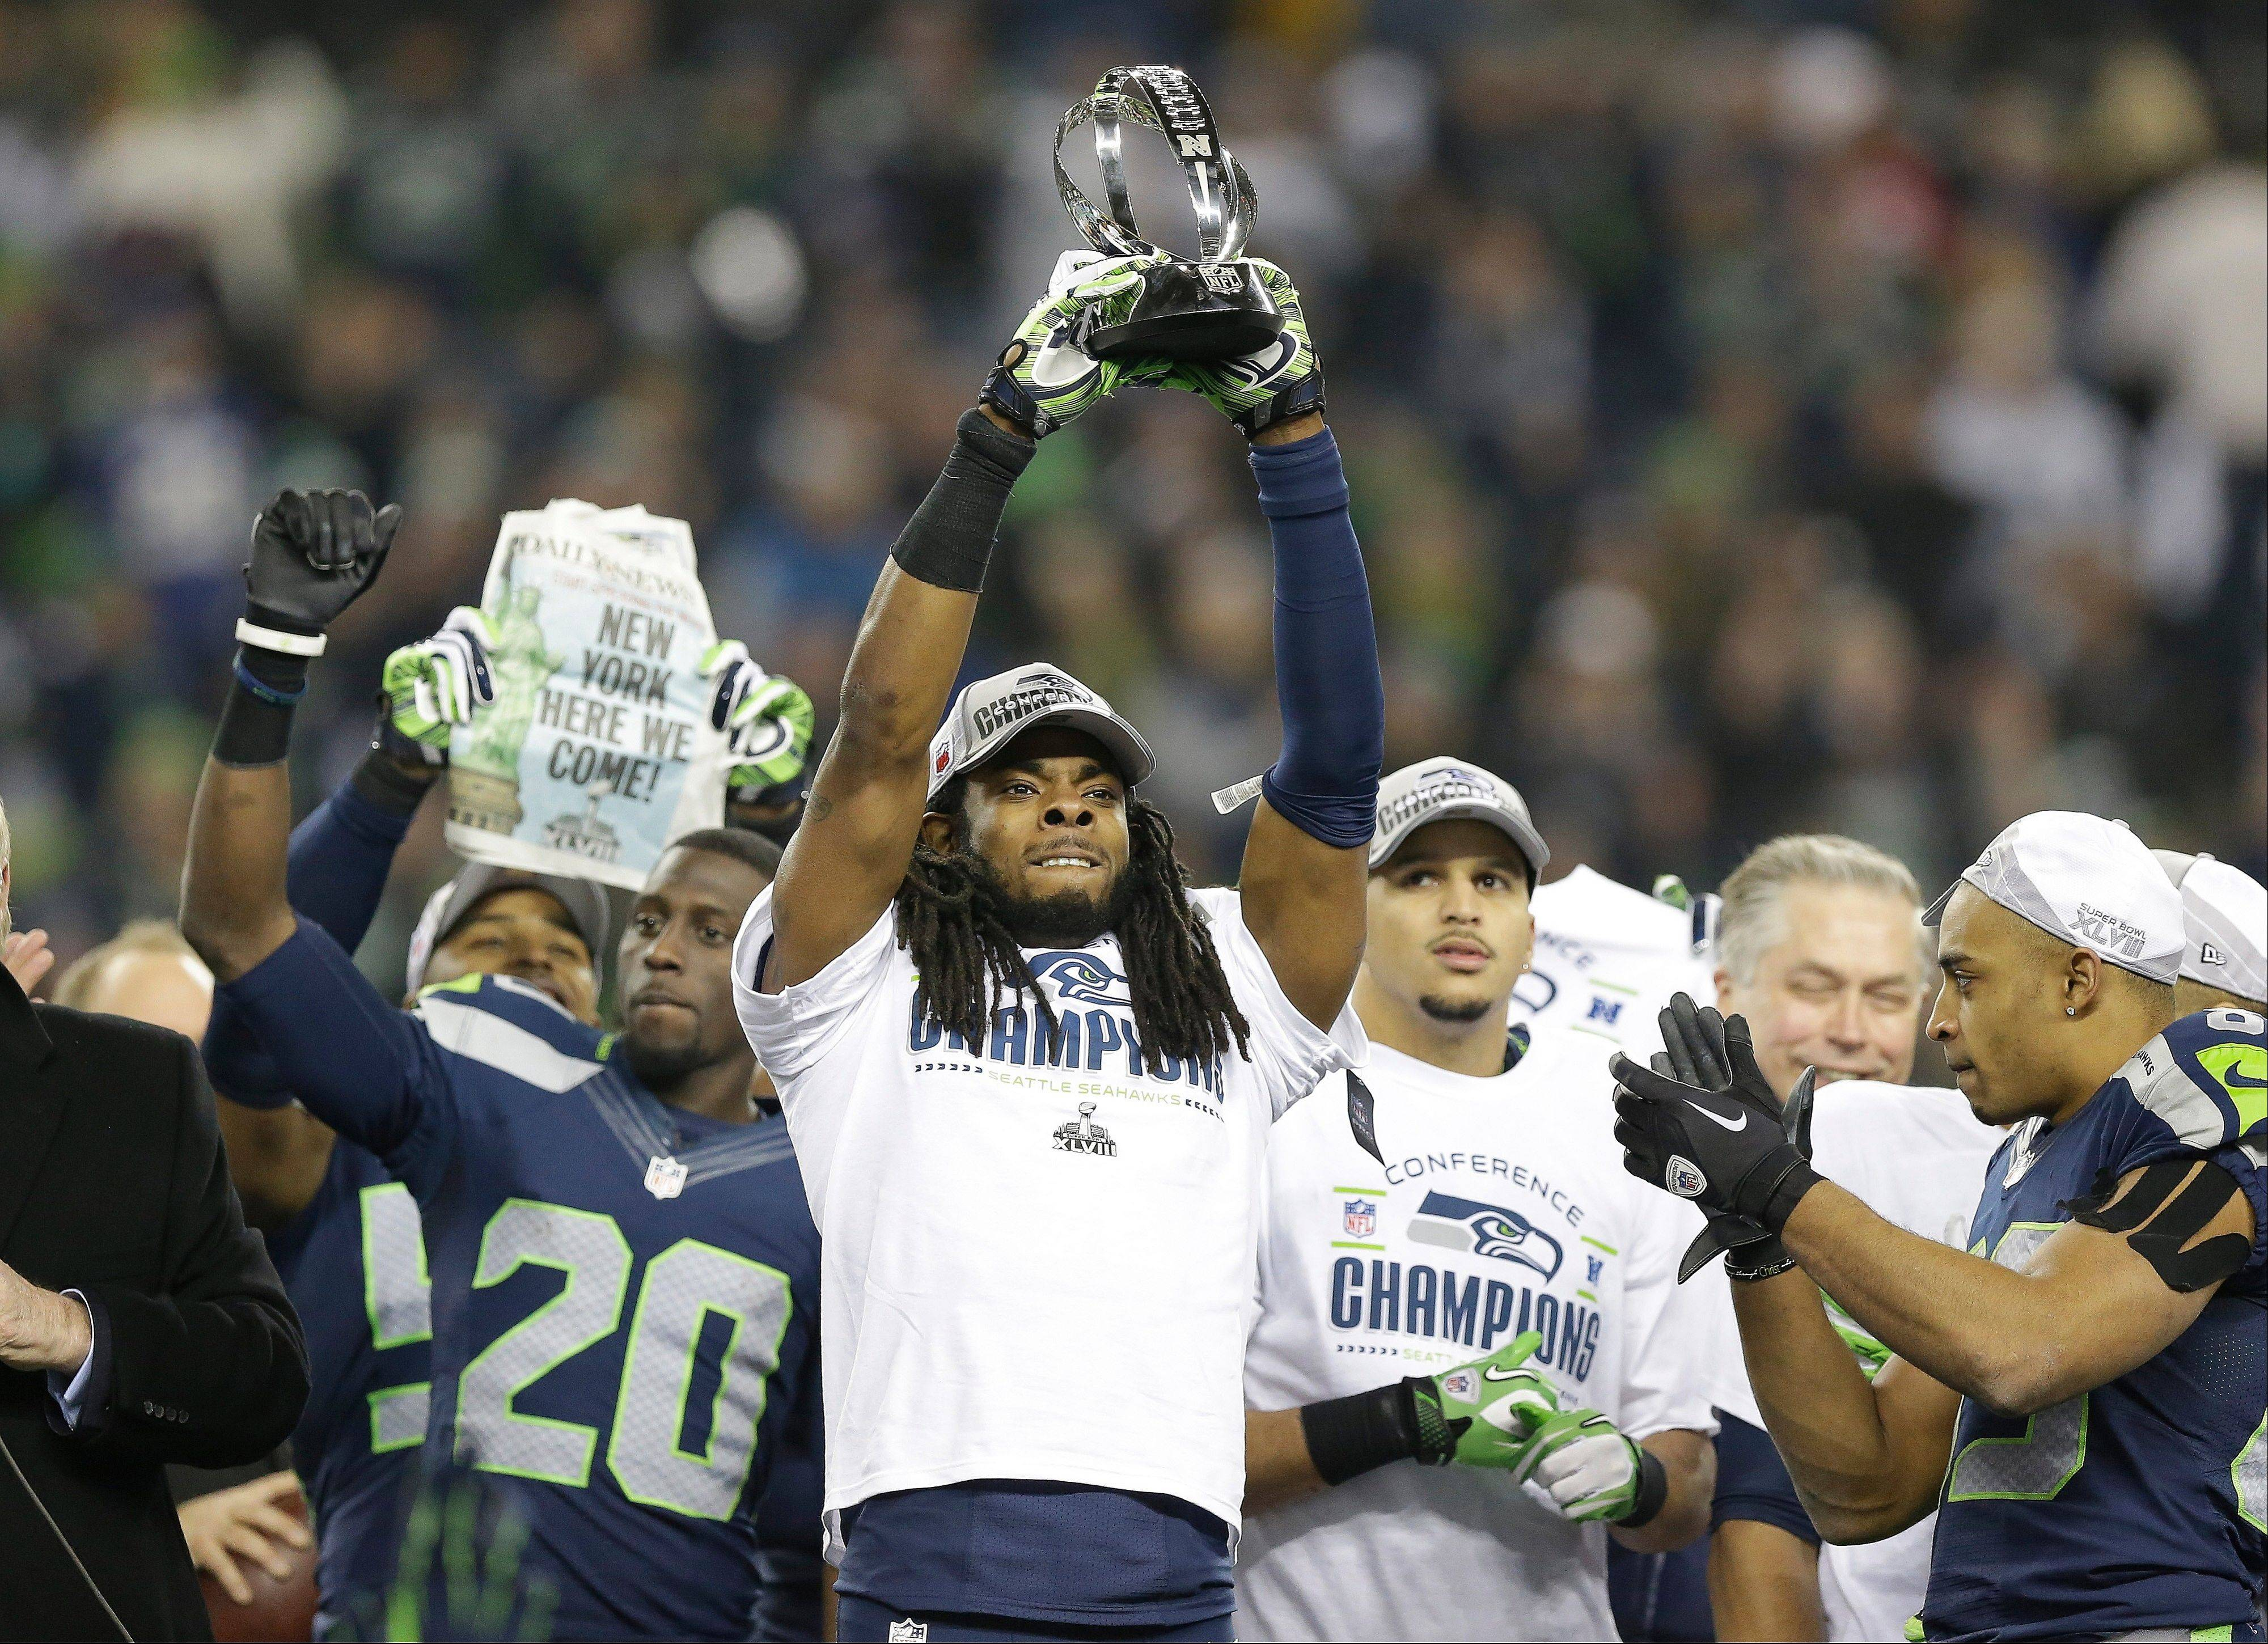 Seattle Seahawks' Richard Sherman holds up the George Halas Trophy after the NFL football NFC Championship game against the San Francisco 49ers Sunday, Jan. 19, 2014, in Seattle. The Seahawks won 23-17 to advance to Super Bowl XLVIII.